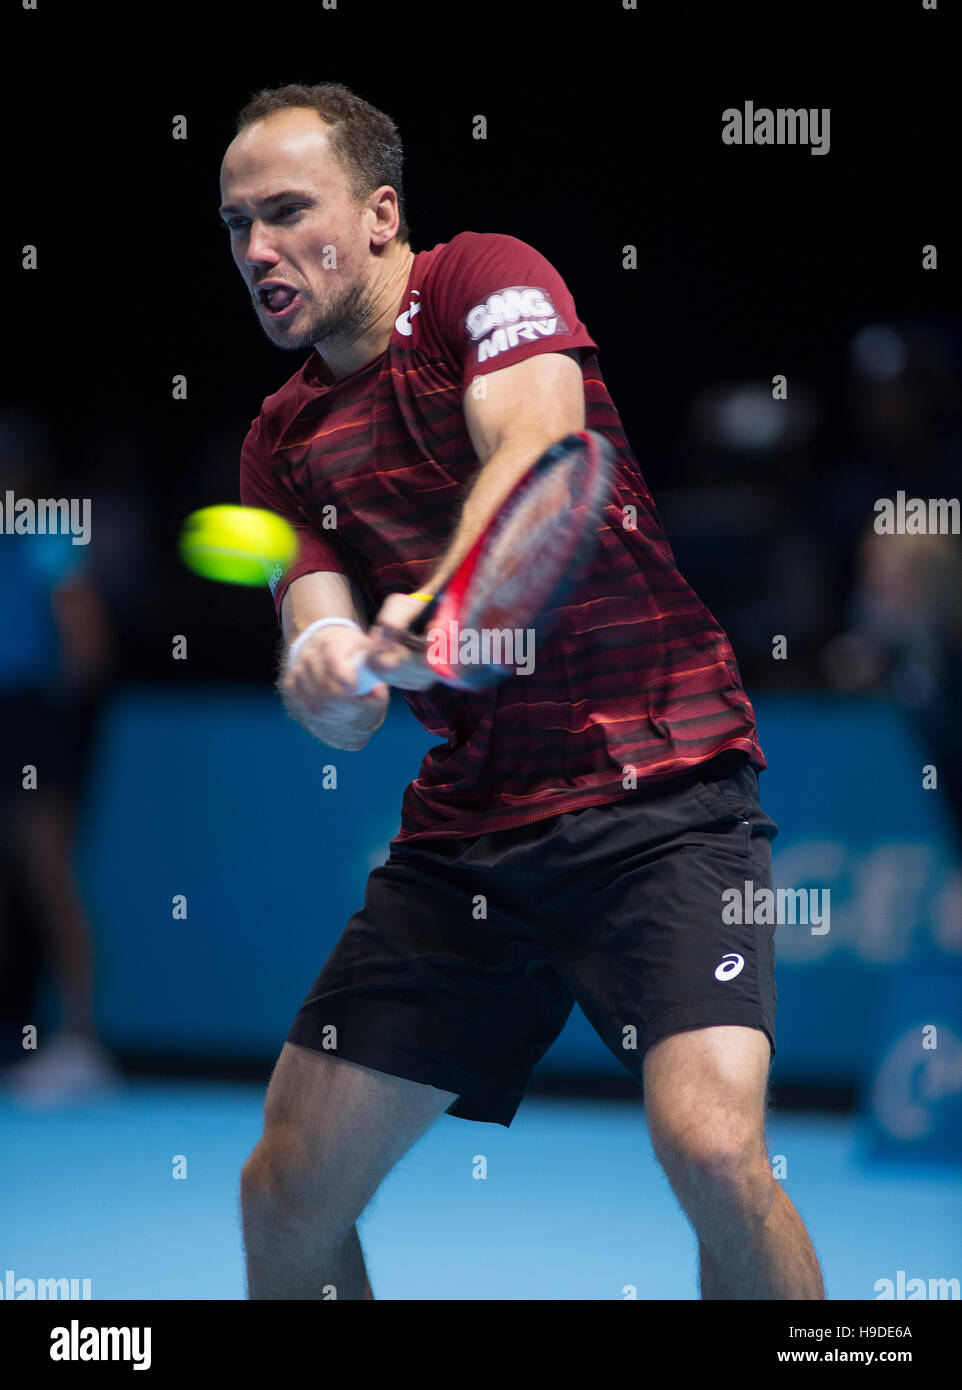 The O2 London UK 19th Nov, 2016 Day 7. Bruno Soares (BRA) in action, two handed backhand. © sportsimages - Stock Image